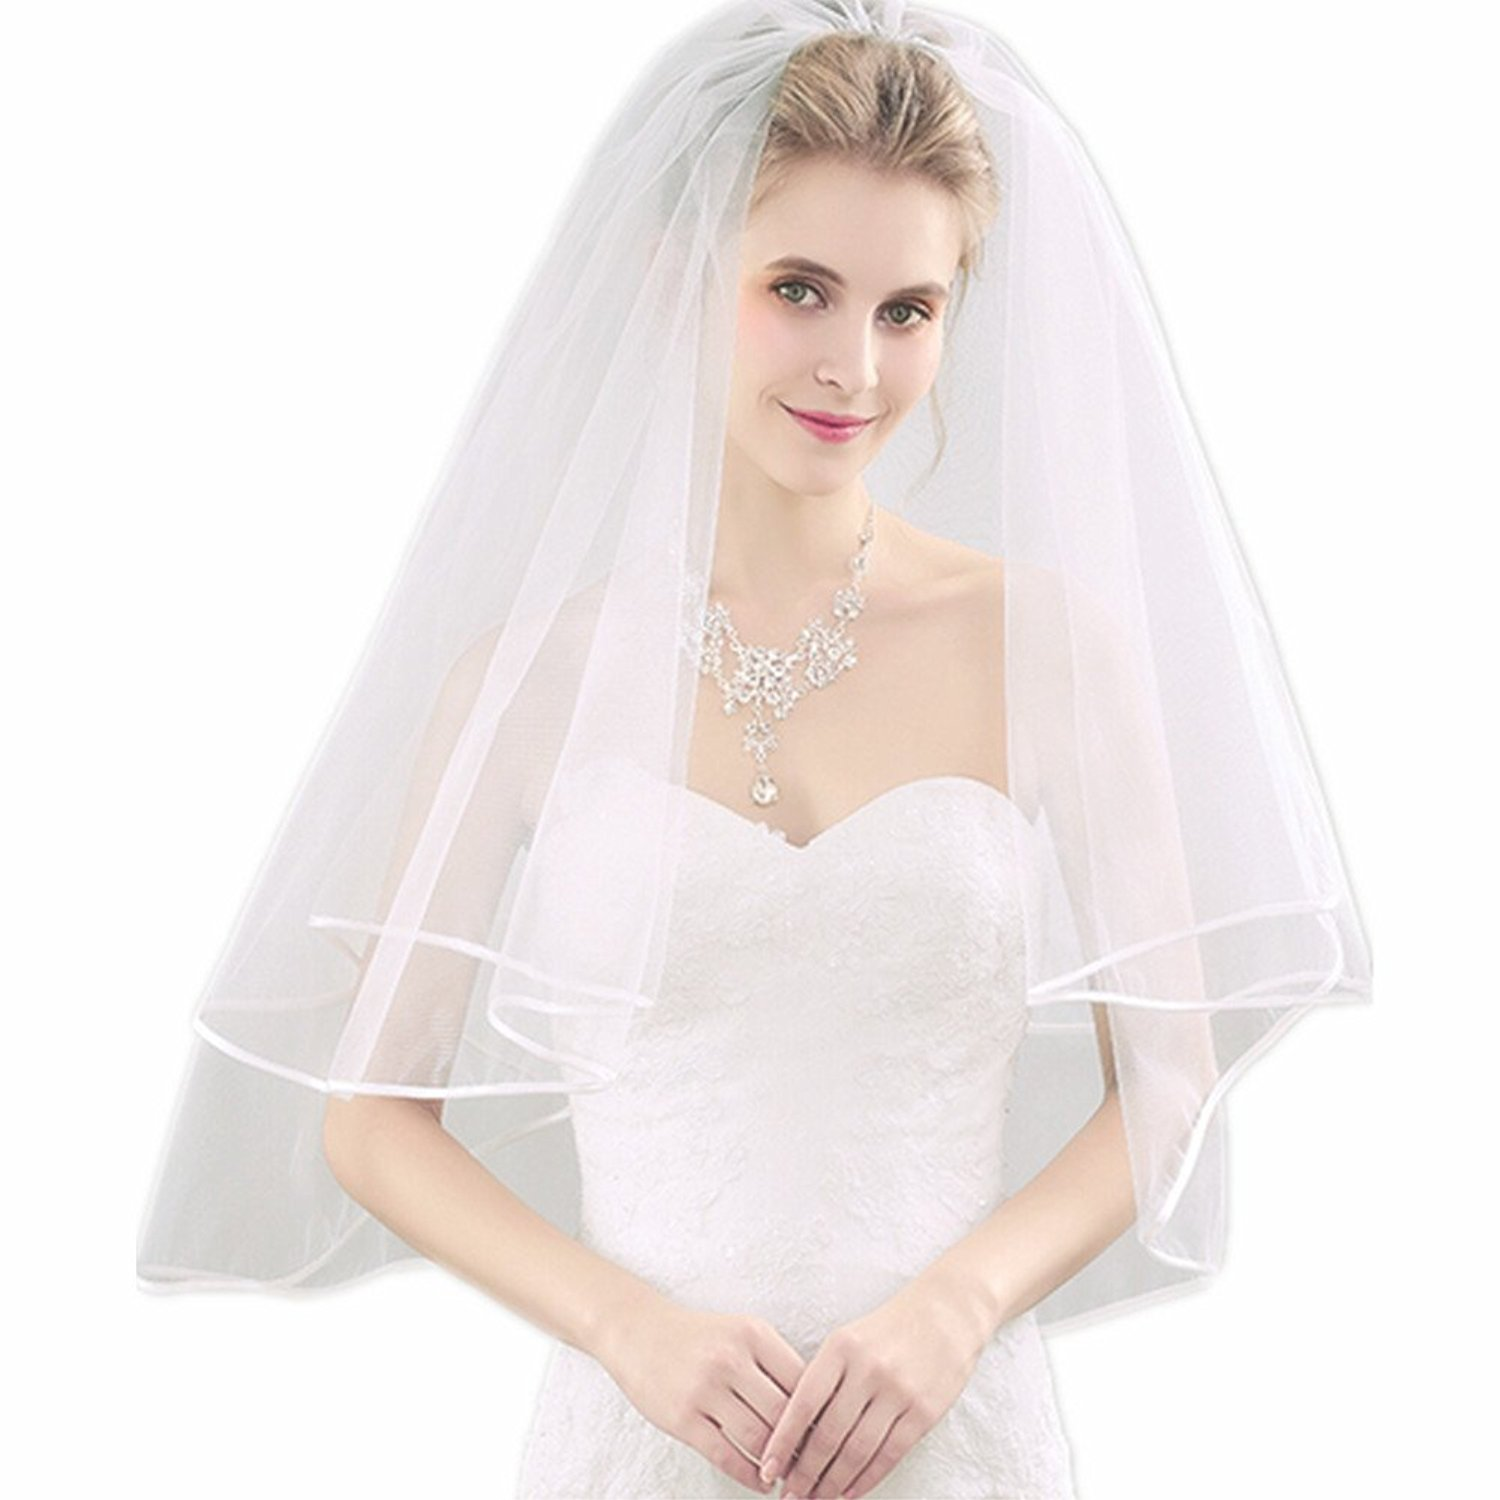 Gofypel Wedding Bridal Veil 2 Layers Tulle Veils with Comb Lace White/Ivory Veil